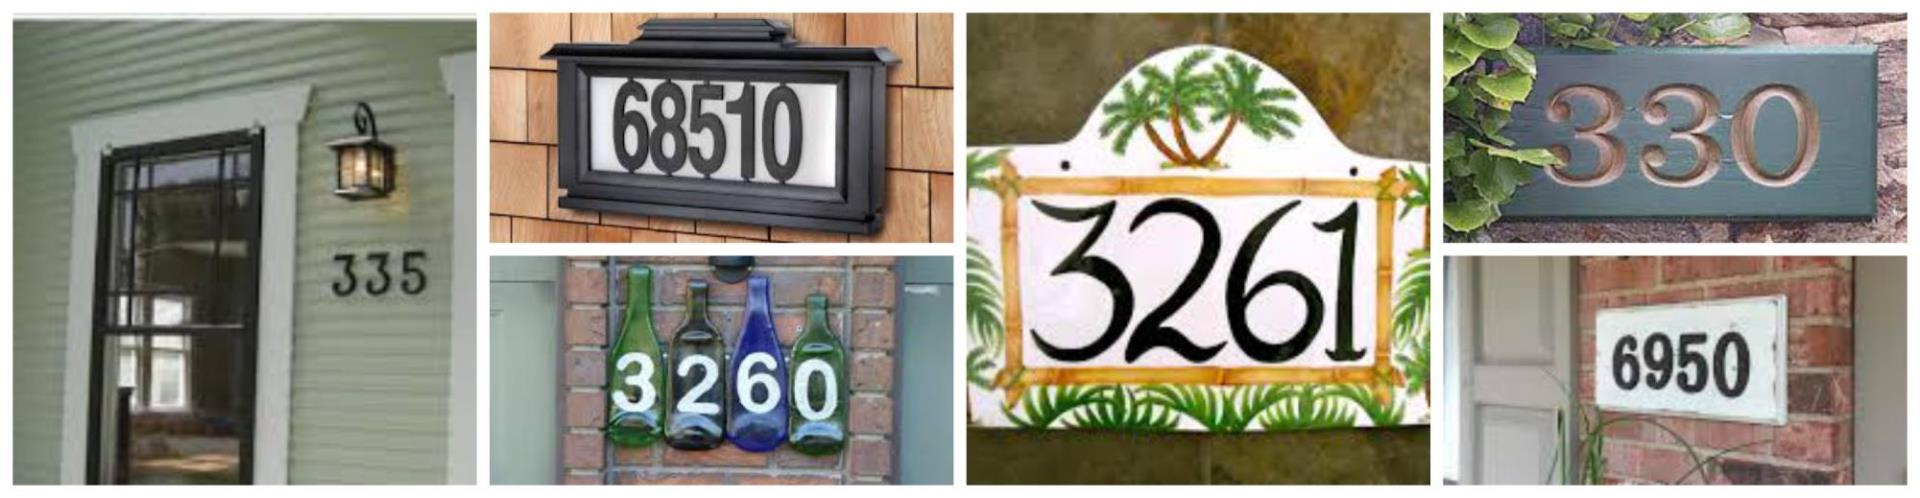 PicMonkey Collage House numbers